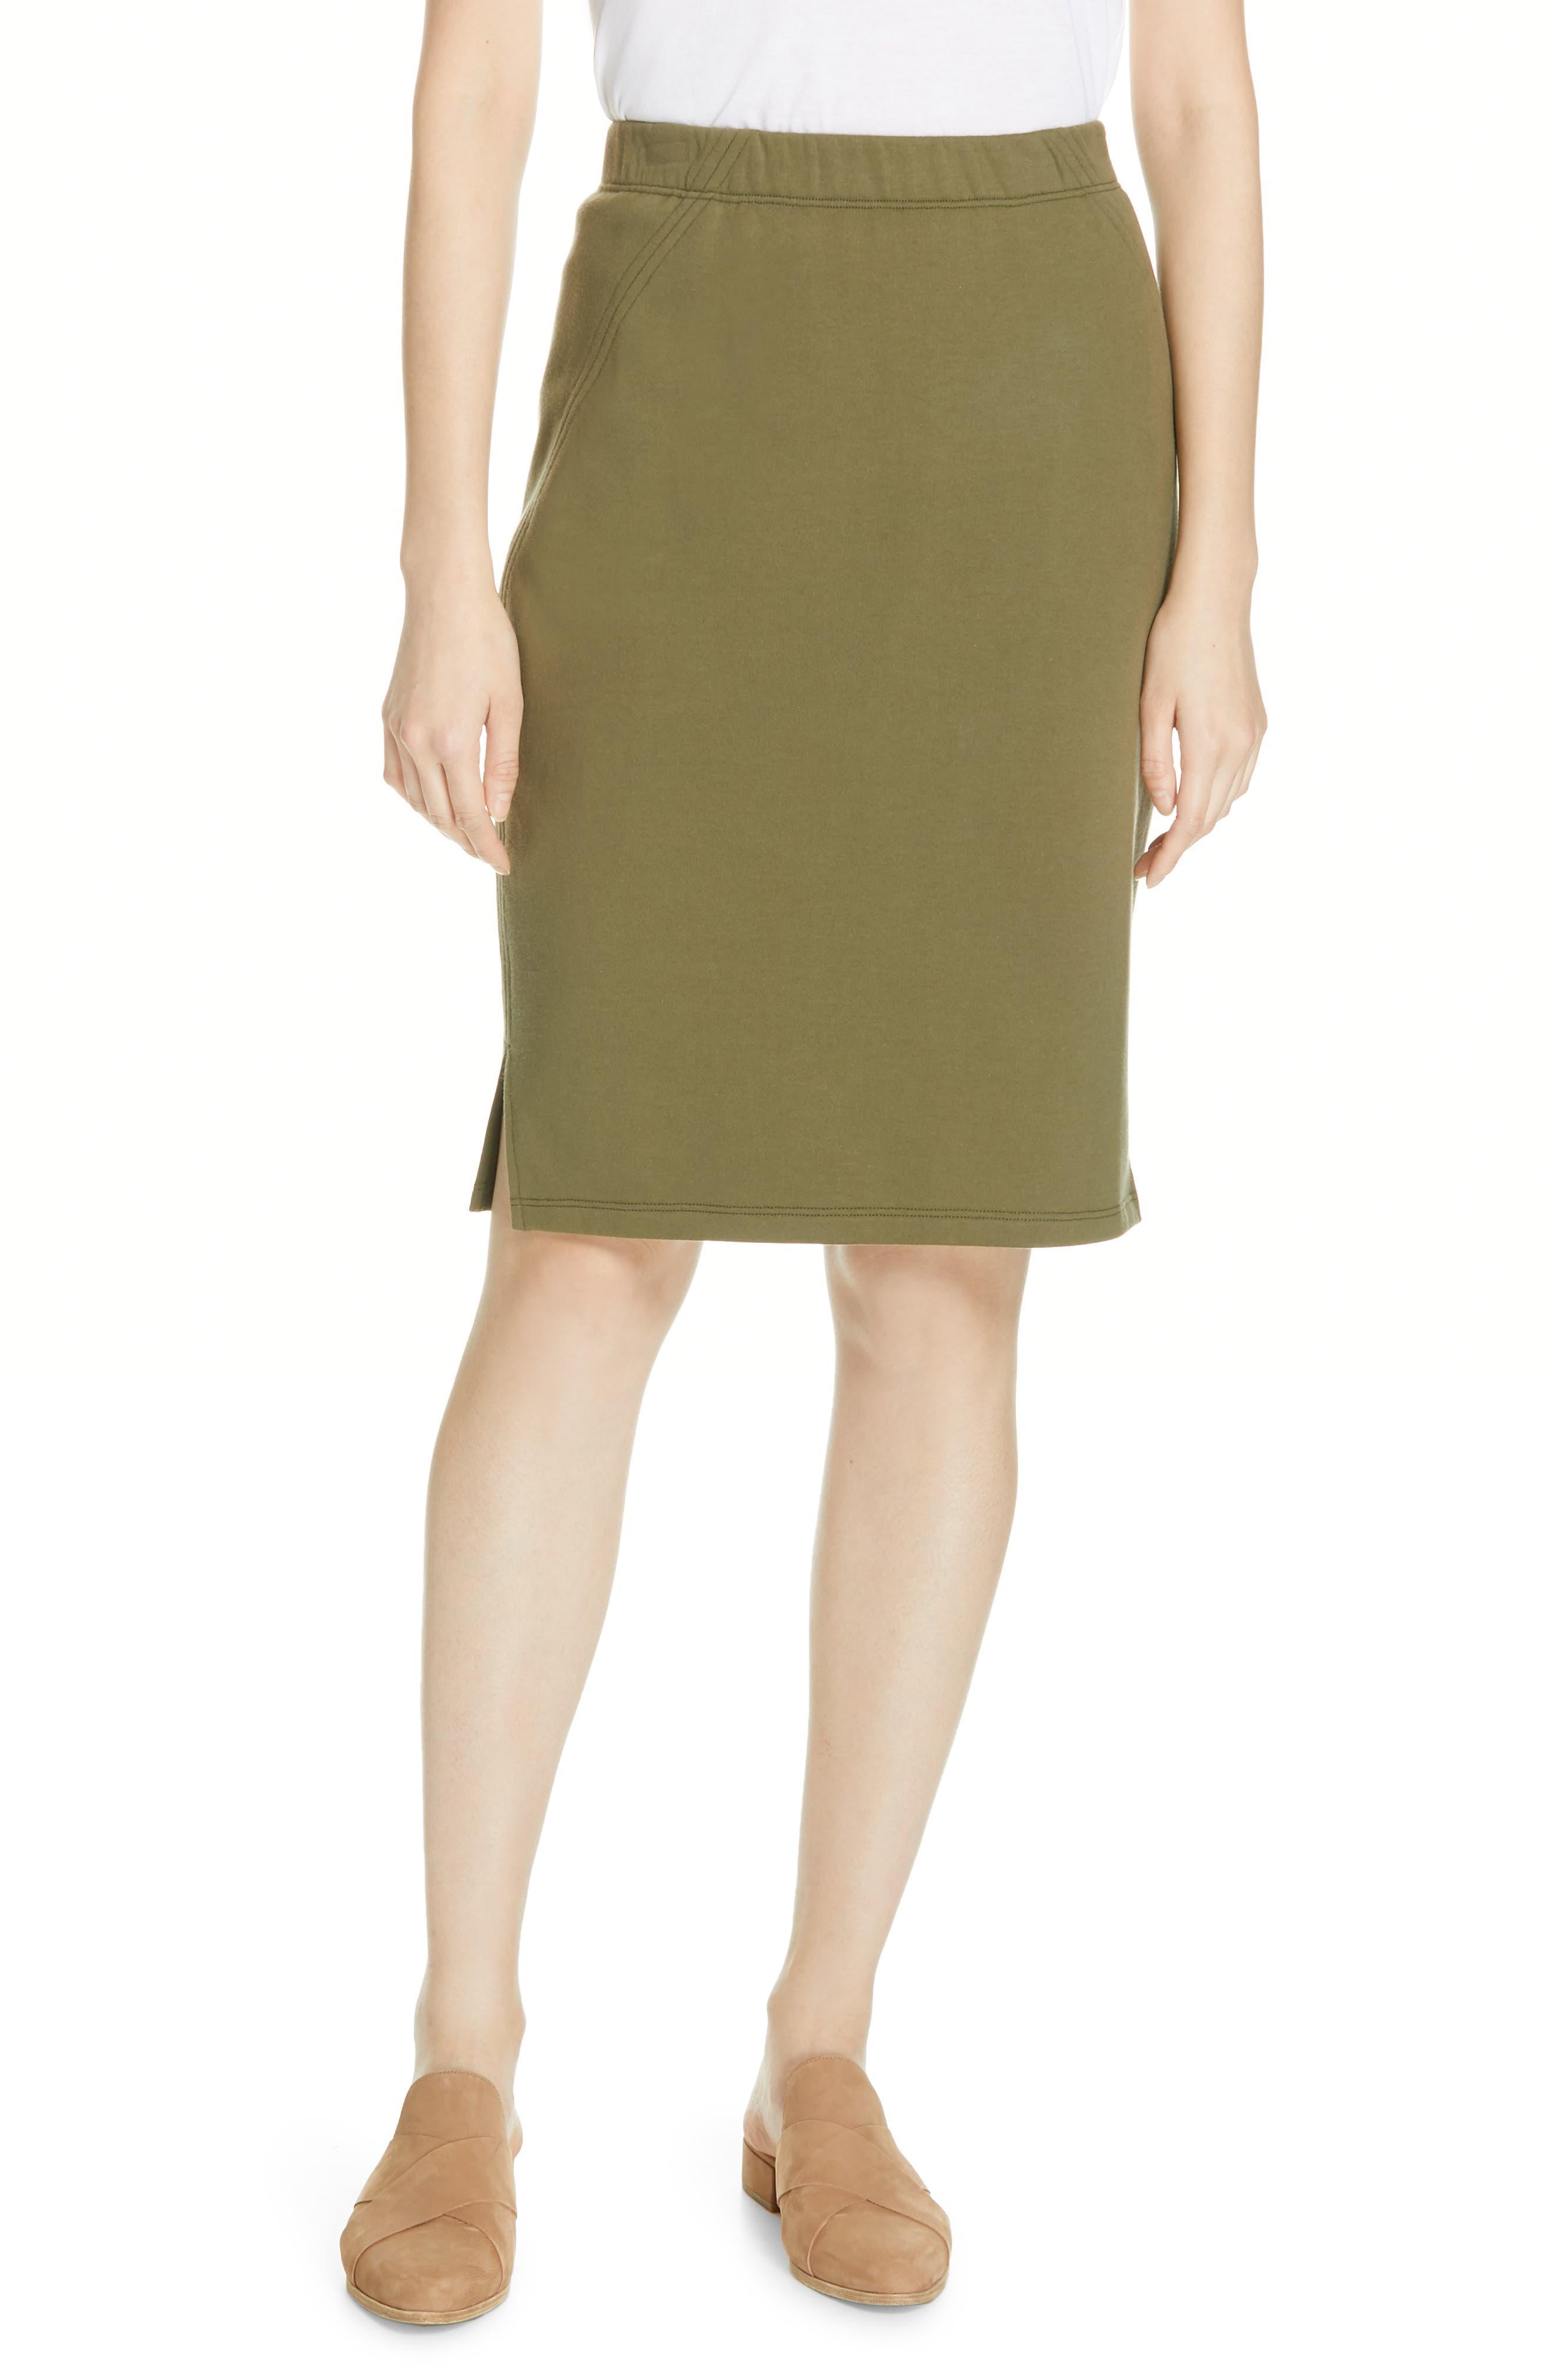 EILEEN FISHER, Organic Cotton Pencil Skirt, Main thumbnail 1, color, OLIVE